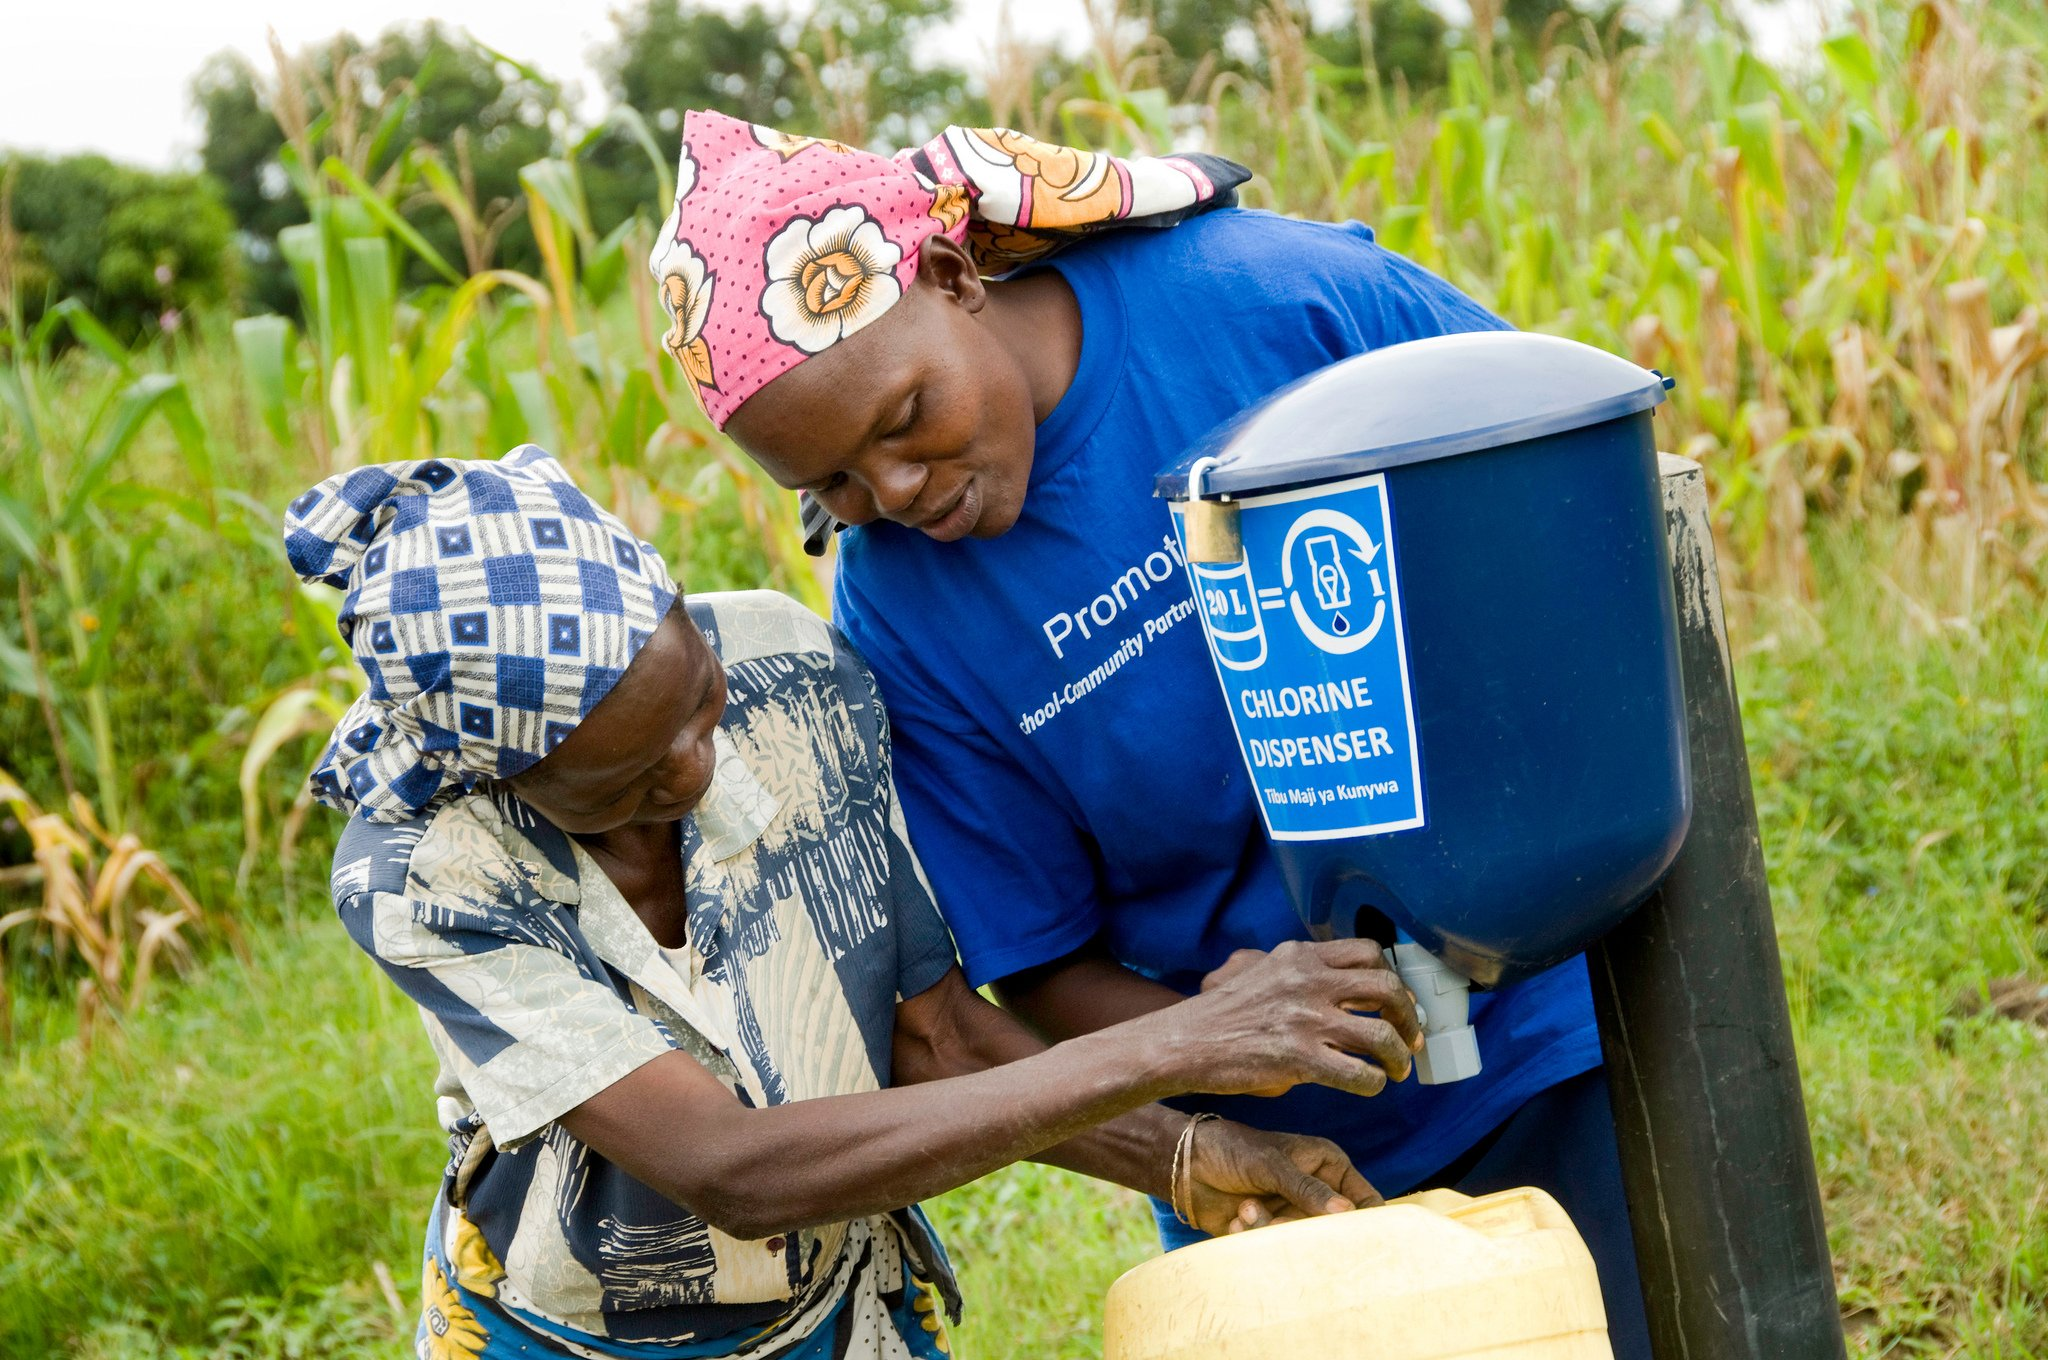 Announcing a Big Milestone: Carbon Credits for Dispensers for Safe Water in Uganda Approved